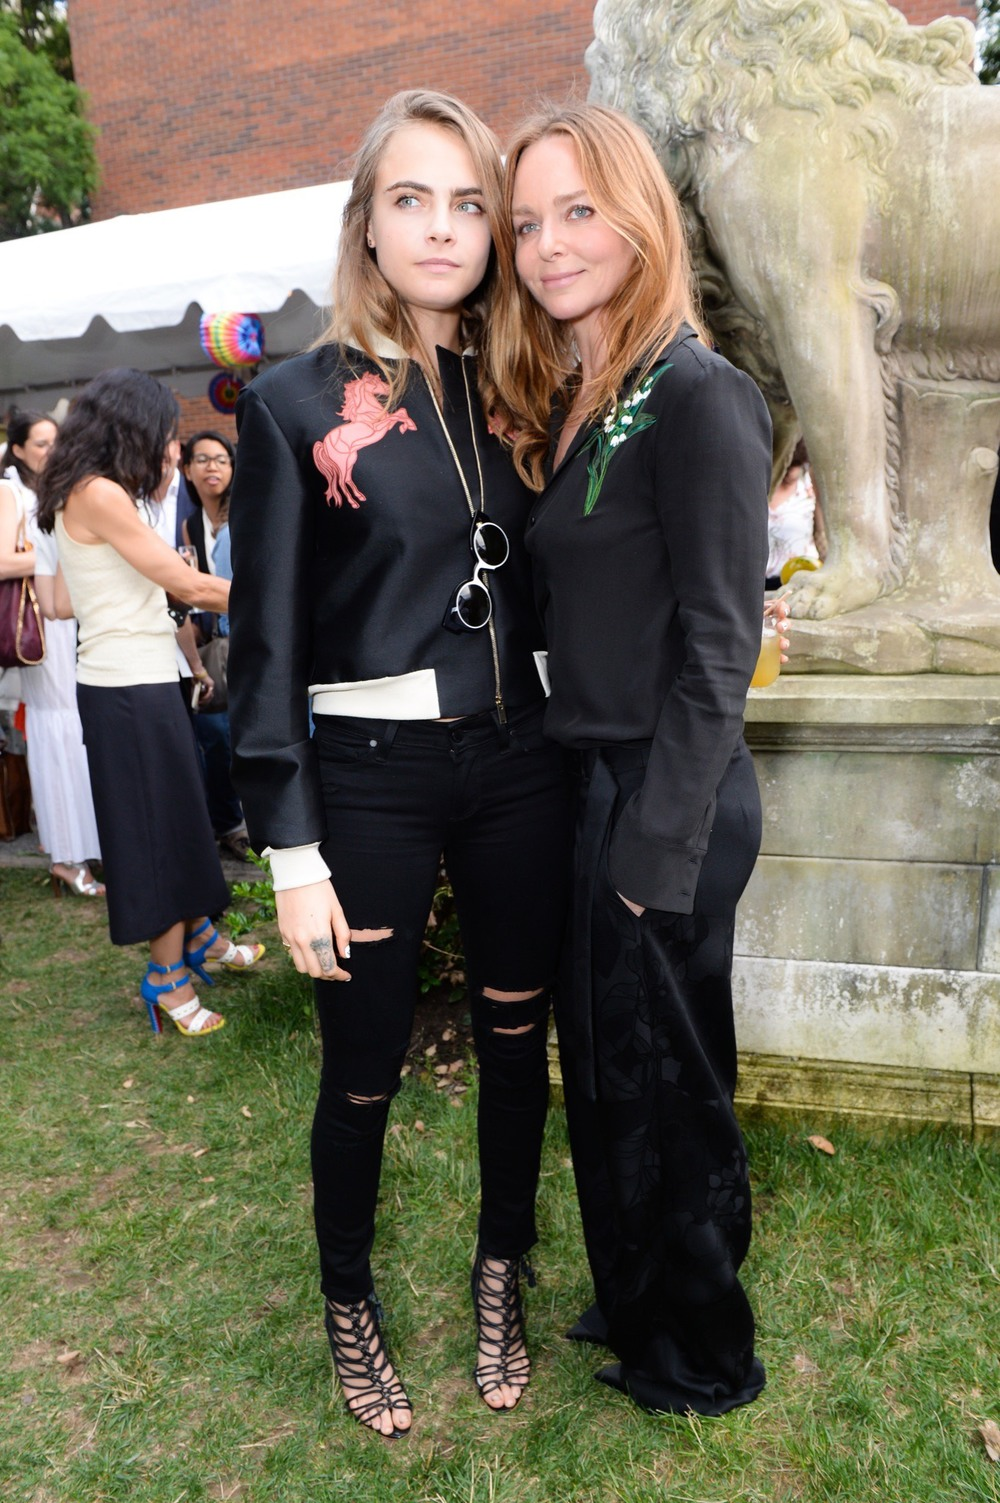 stella-mccartney-resort-presentation-party-060915-03.jpg